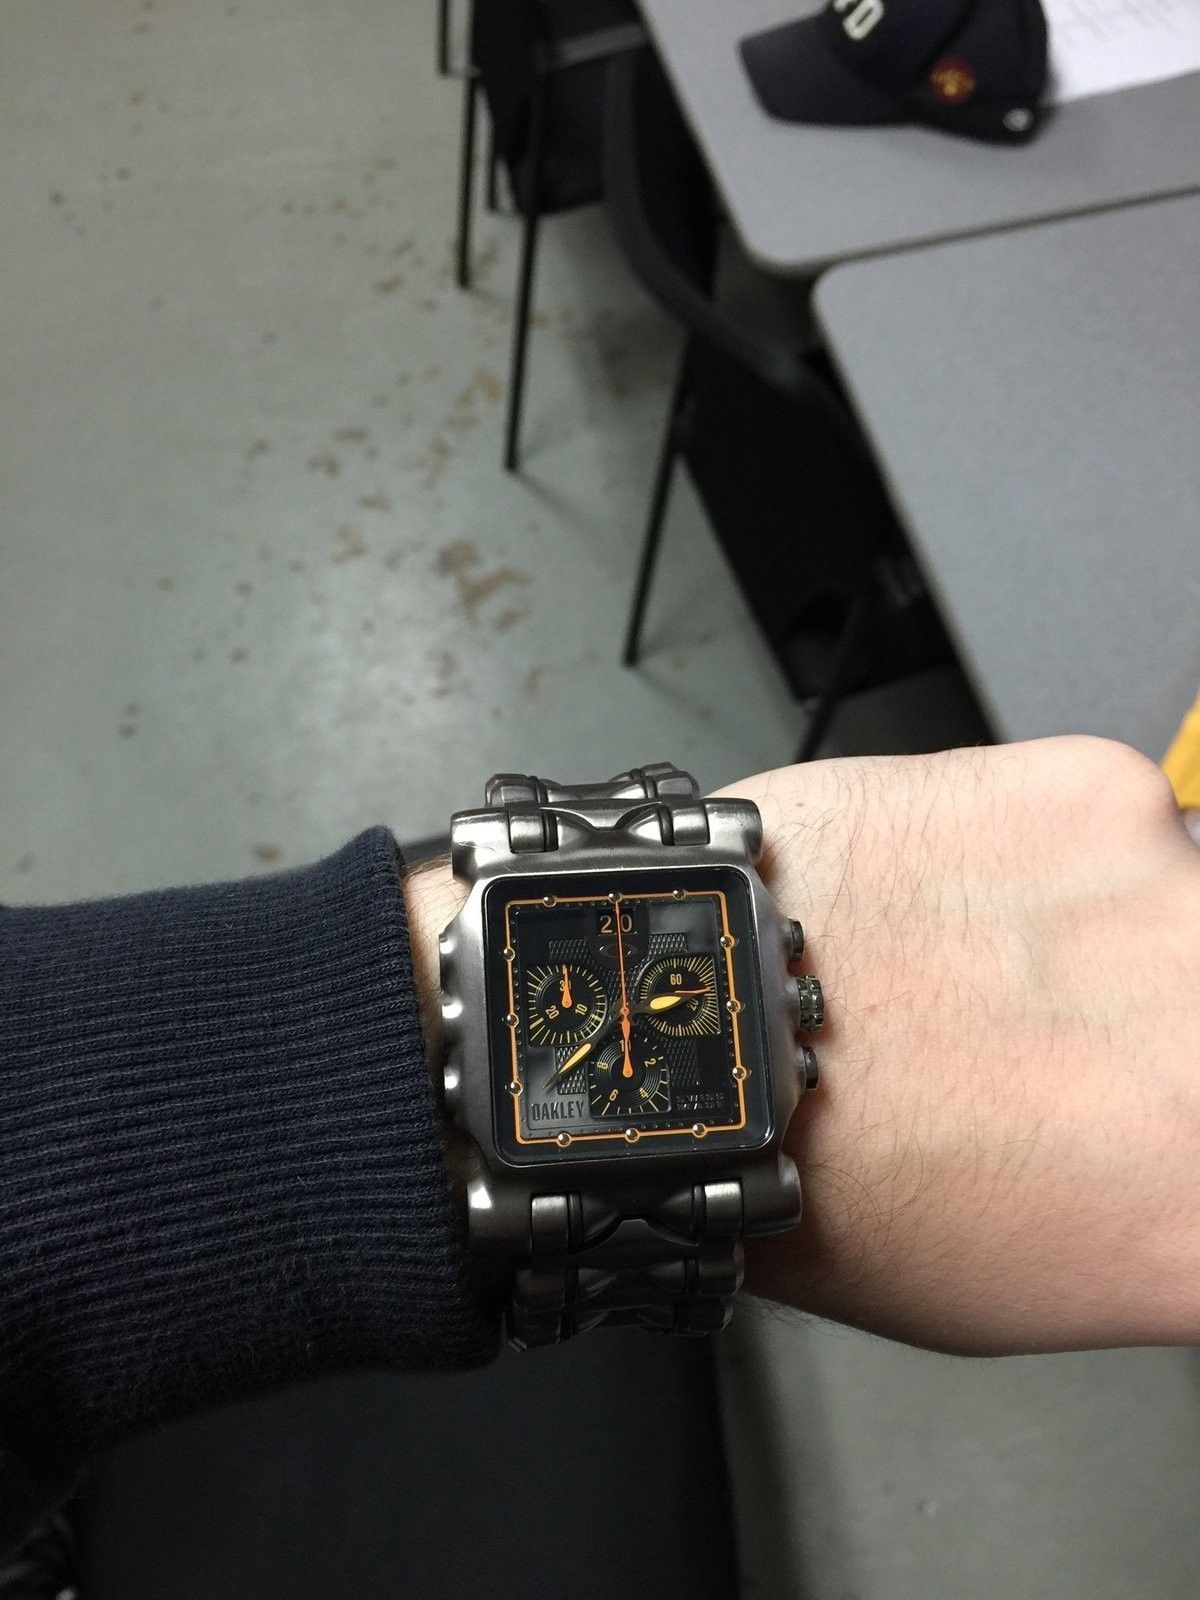 Thanks to Oakleykid69 I got my first Oakley watch (Minute Machine) - image.jpg